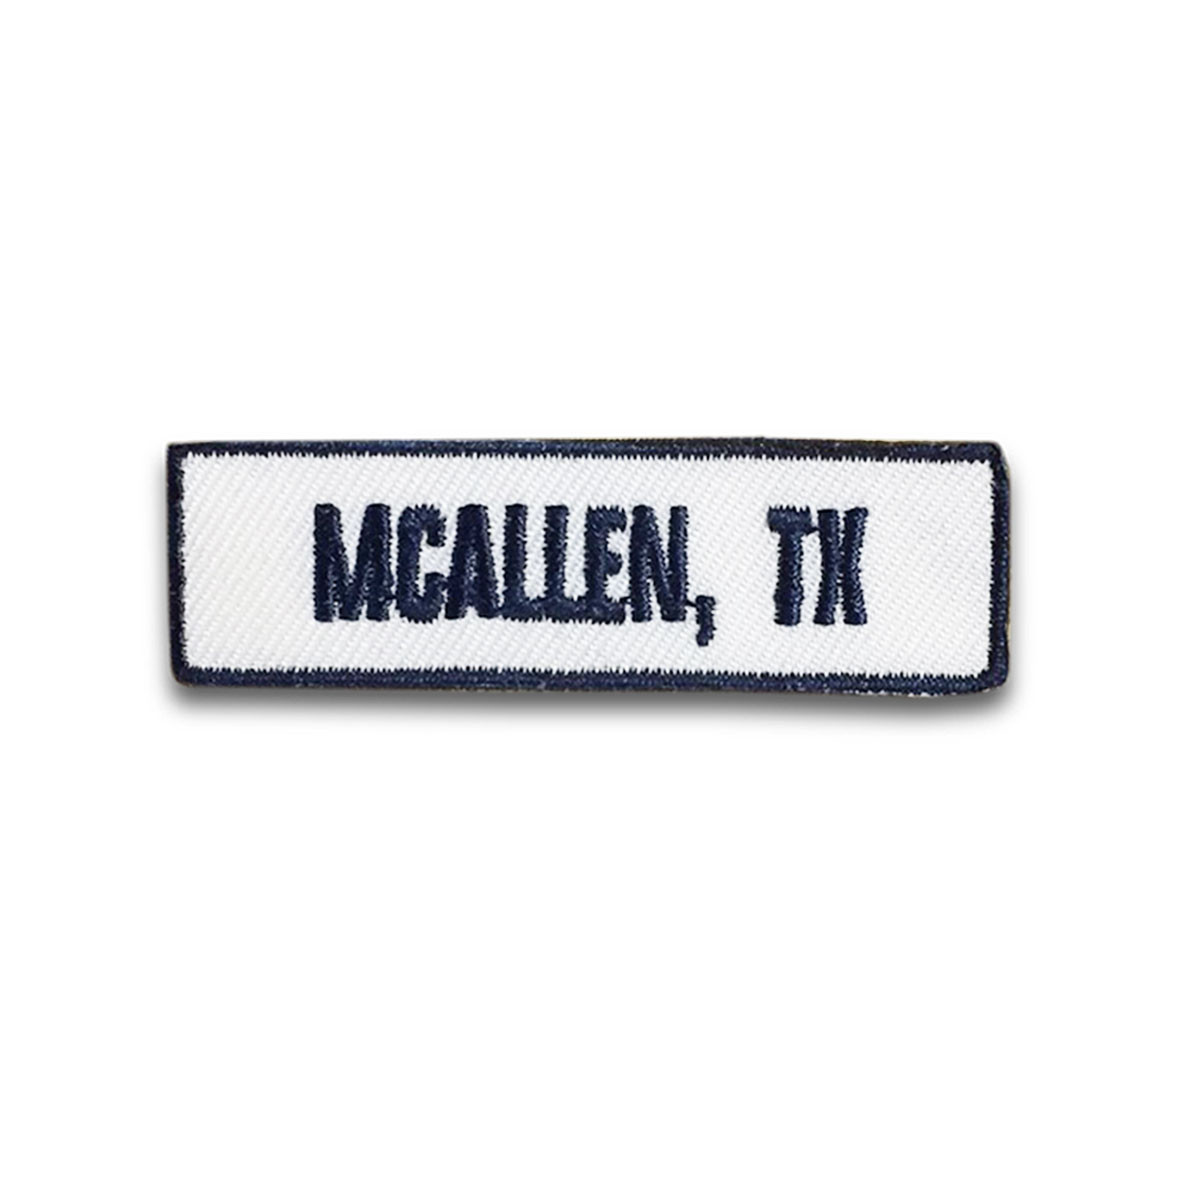 McAllen, TX Rocker Patch